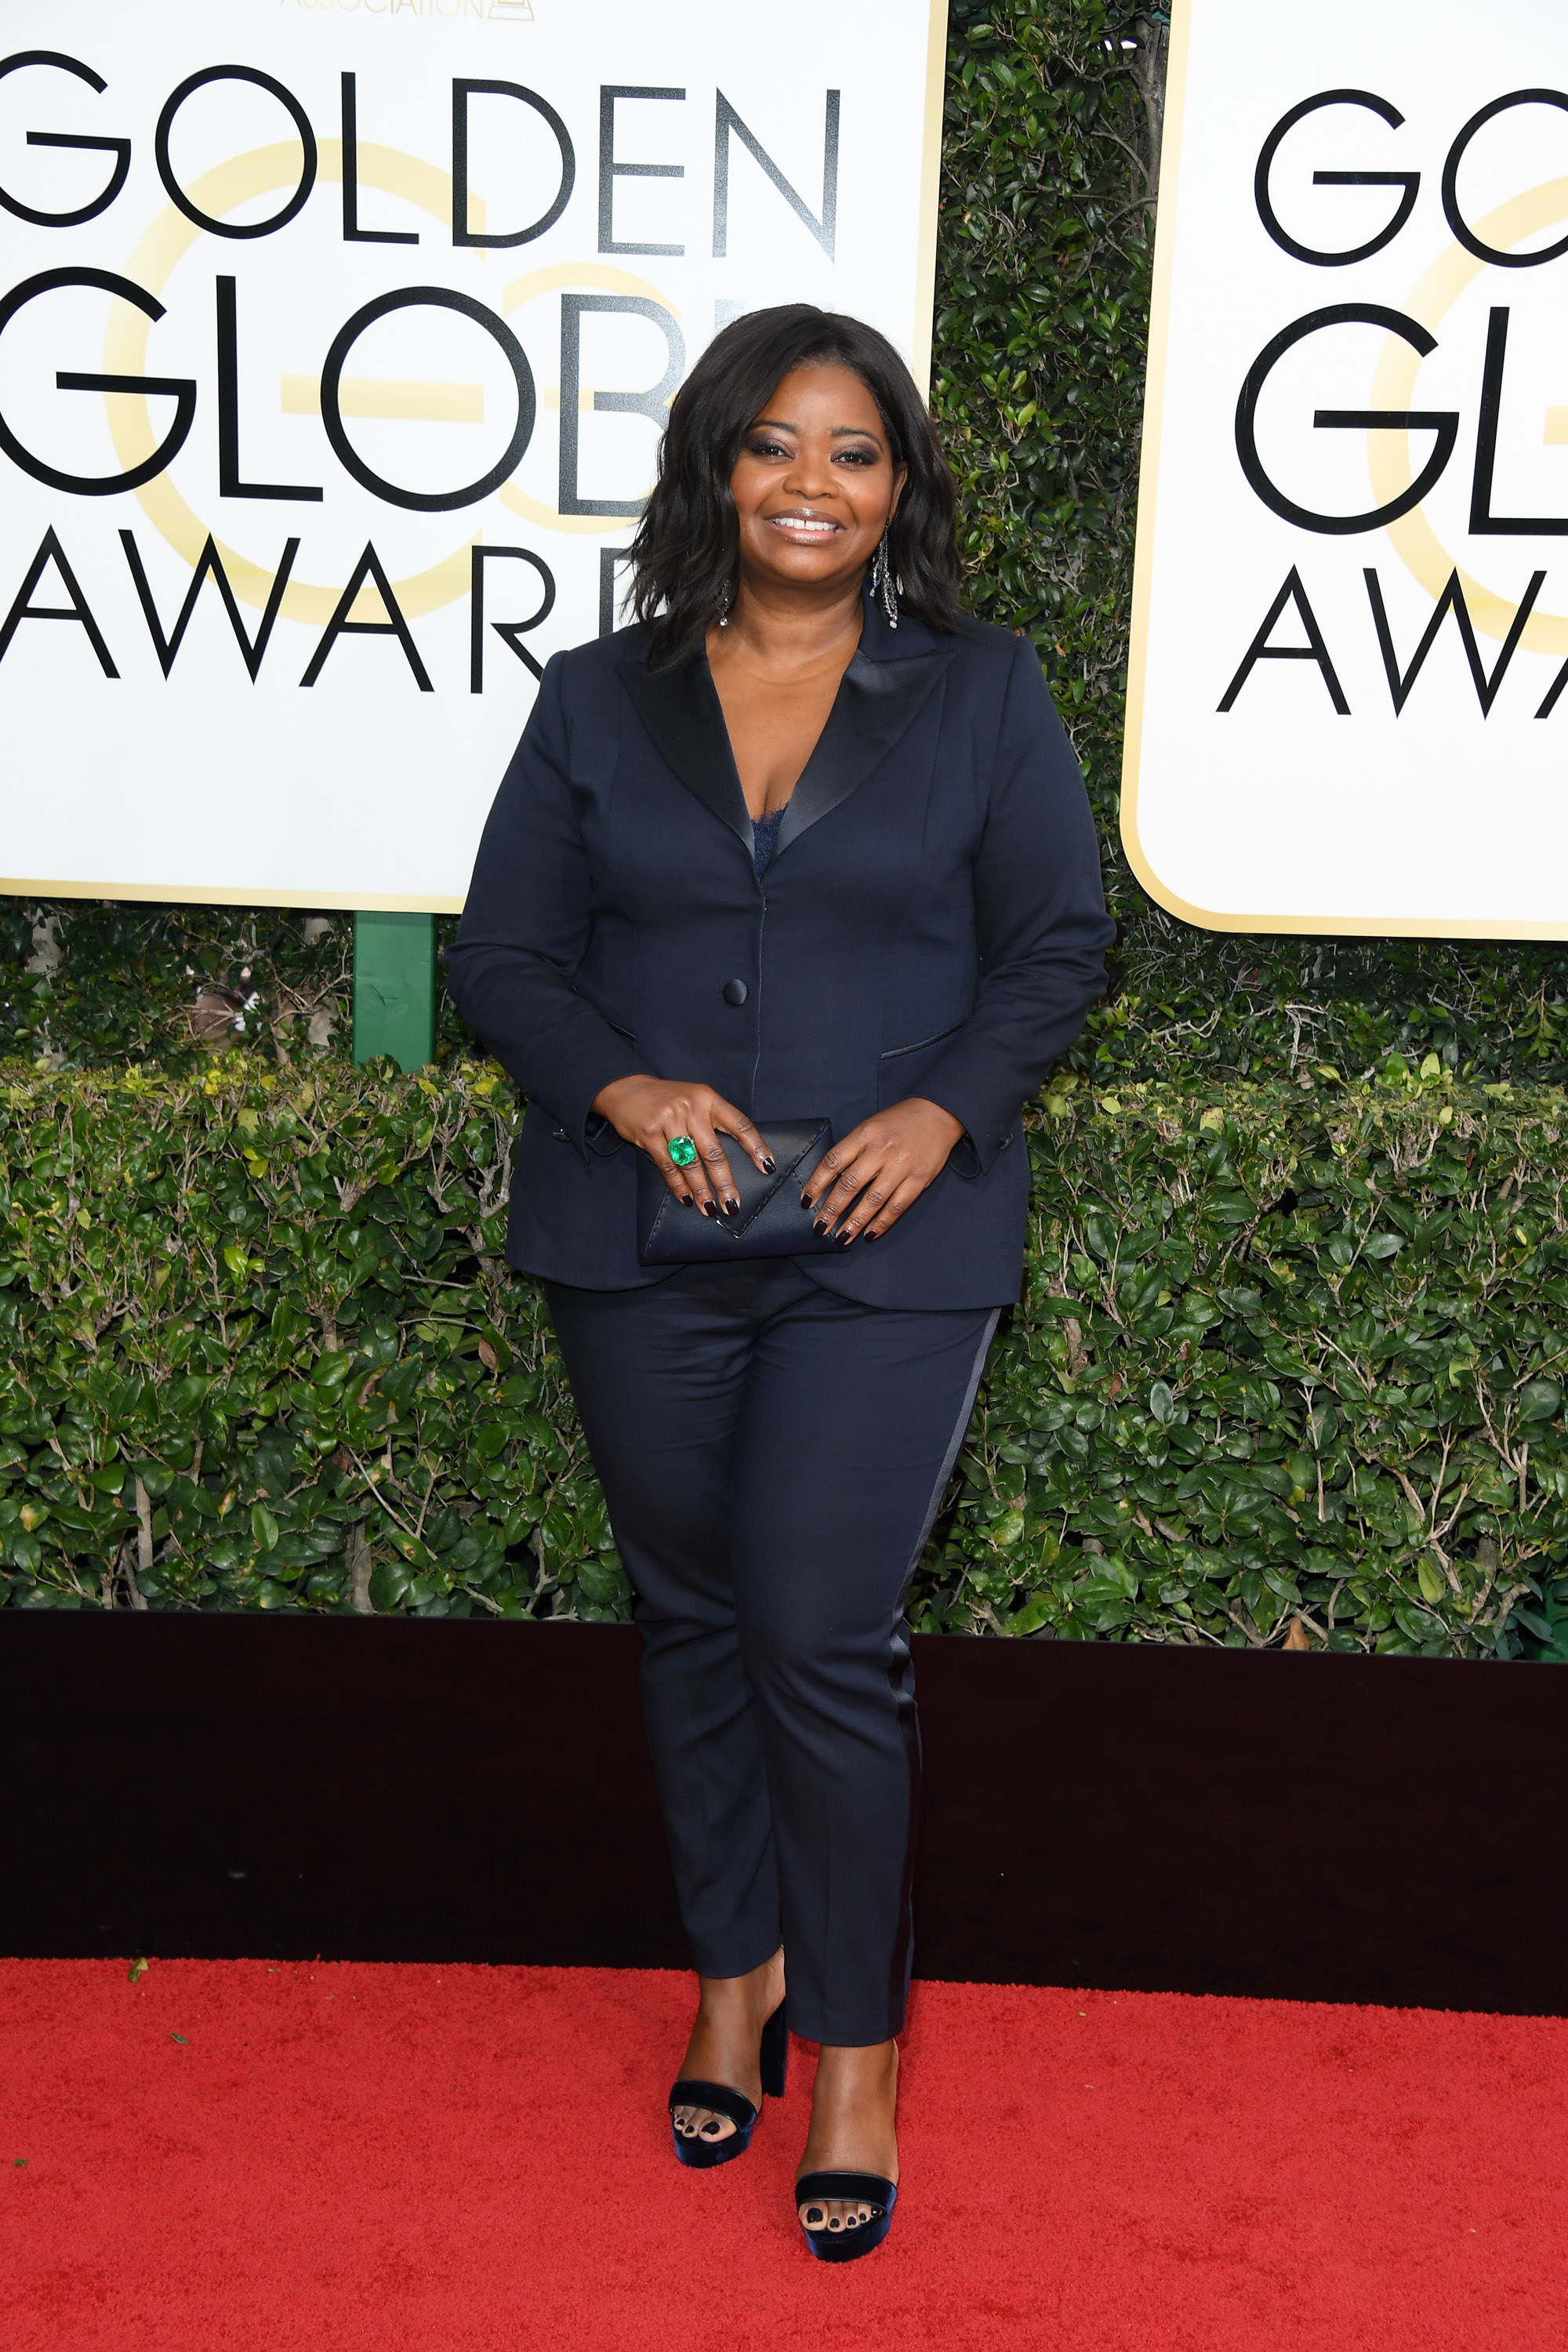 BEVERLY HILLS, CA - JANUARY 08: Actress Octavia Spencer attends the 74th Annual Golden Globe Awards held at The Beverly Hilton Hotel on January 8, 2017 in Beverly Hills, California. (Photo by George Pimentel/WireImage)